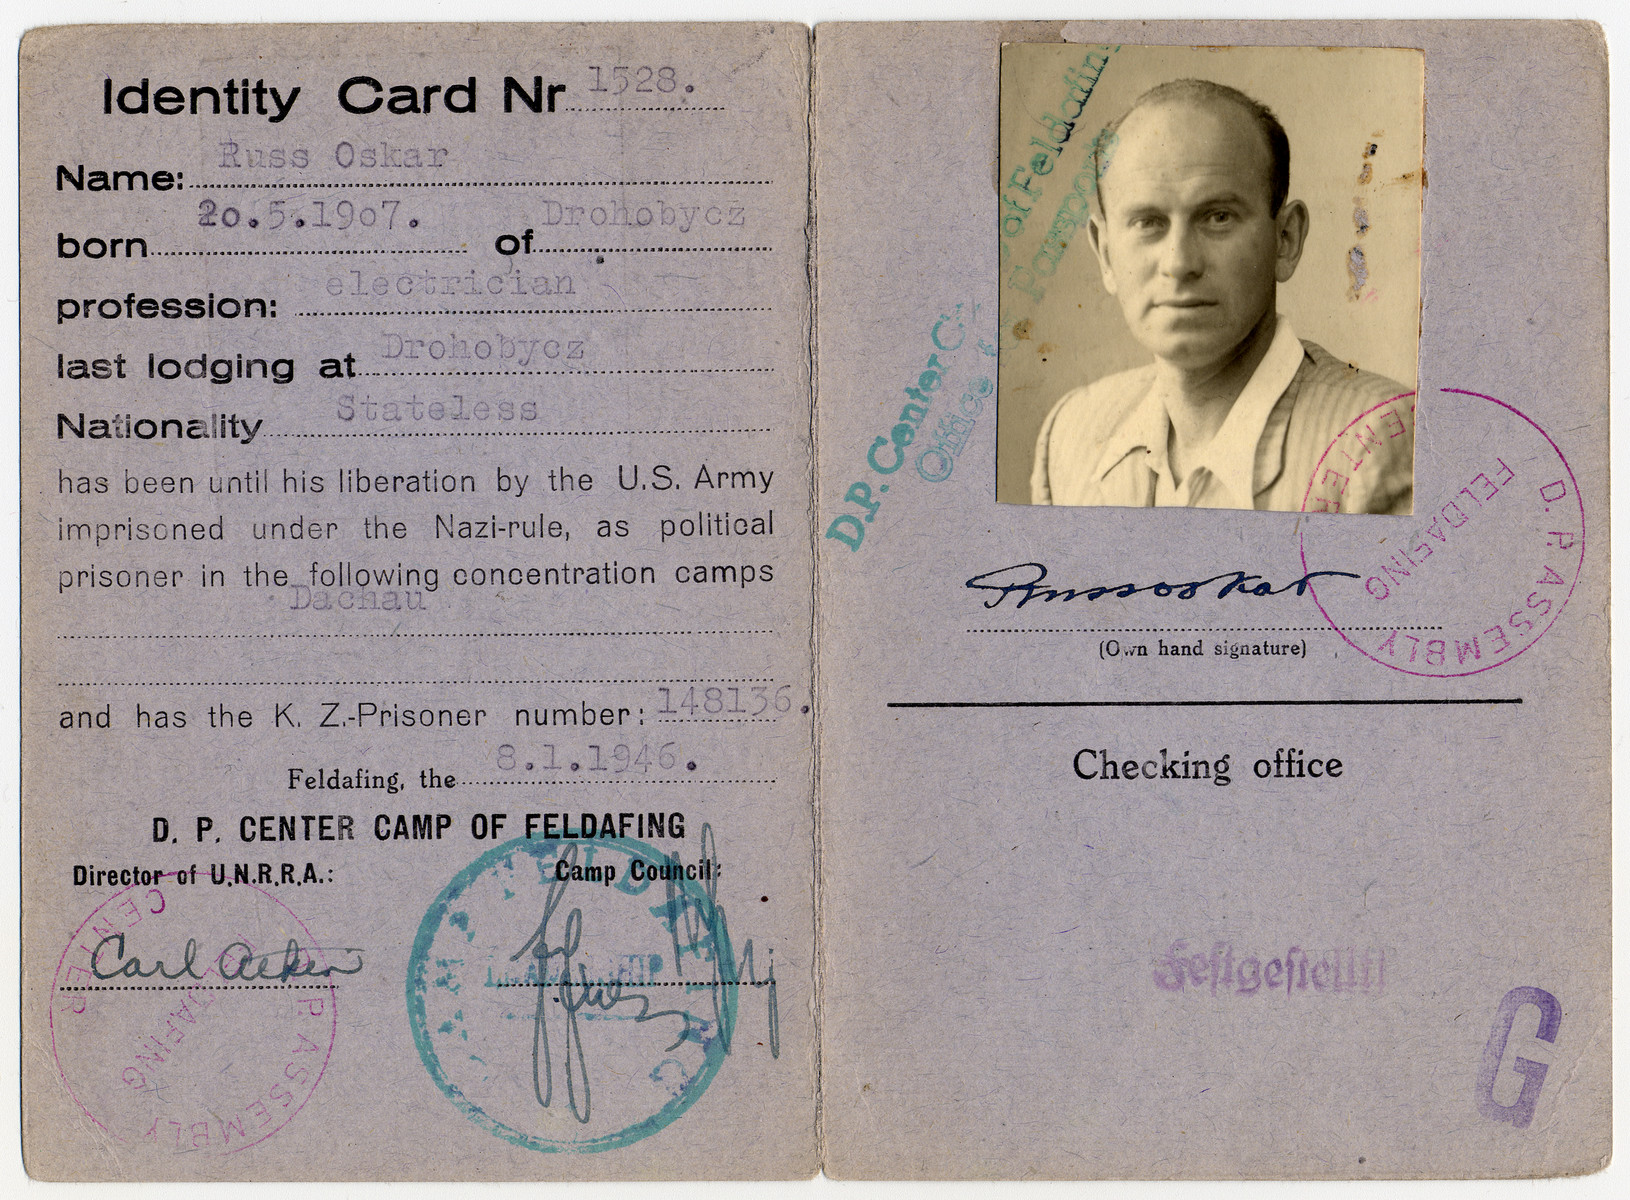 Identification card issued to Oskar Russ in the Feldafing displaced persons' camp.